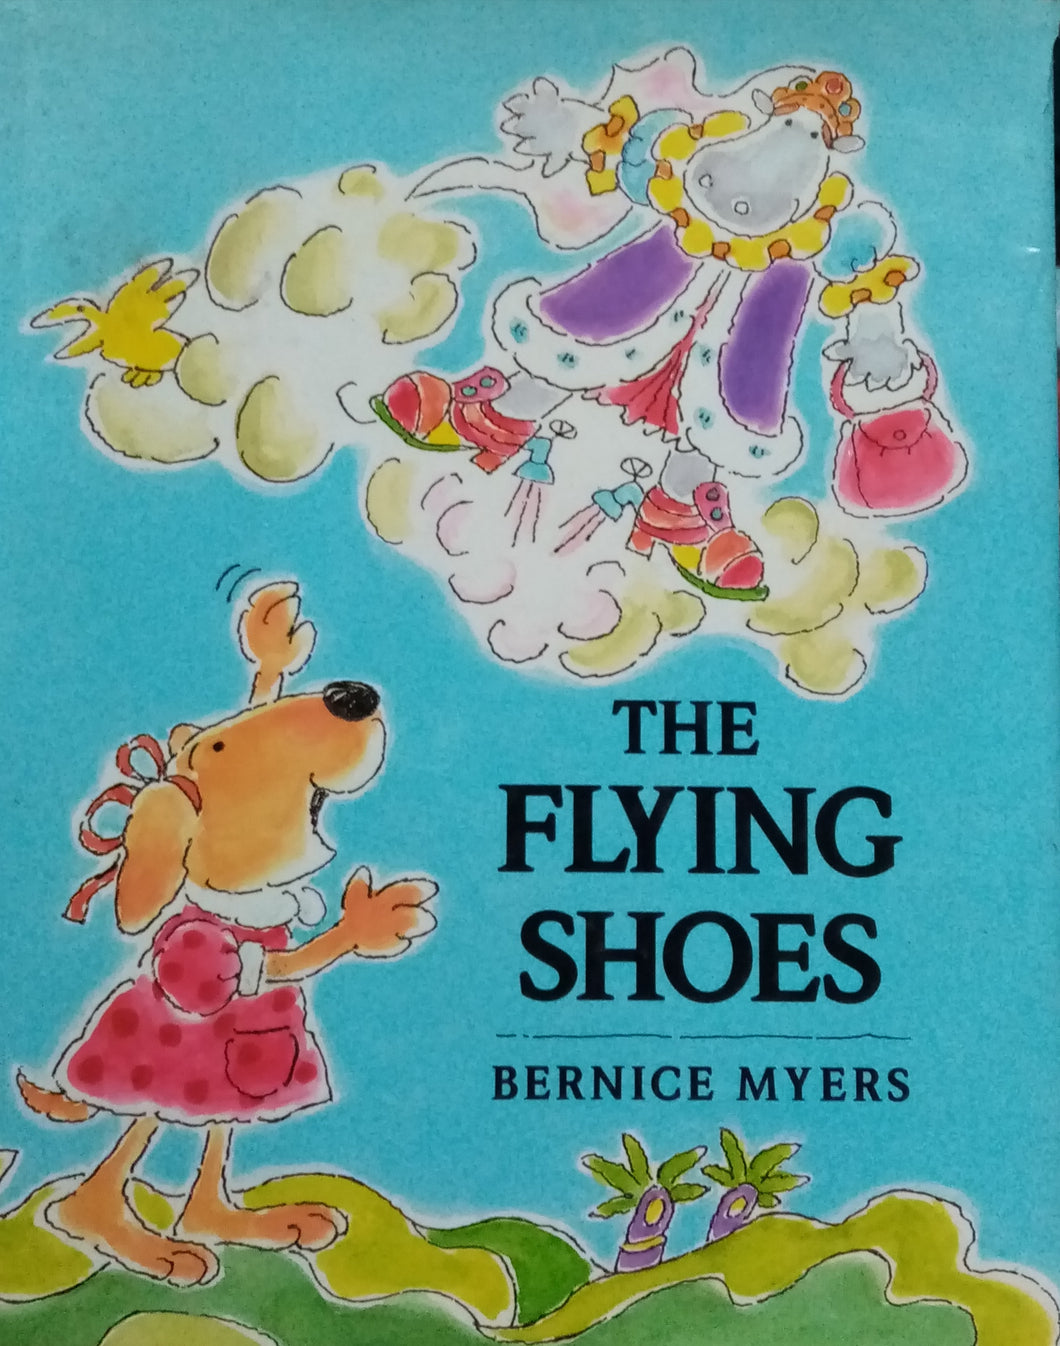 The Flying Shoes by Bernice Myers